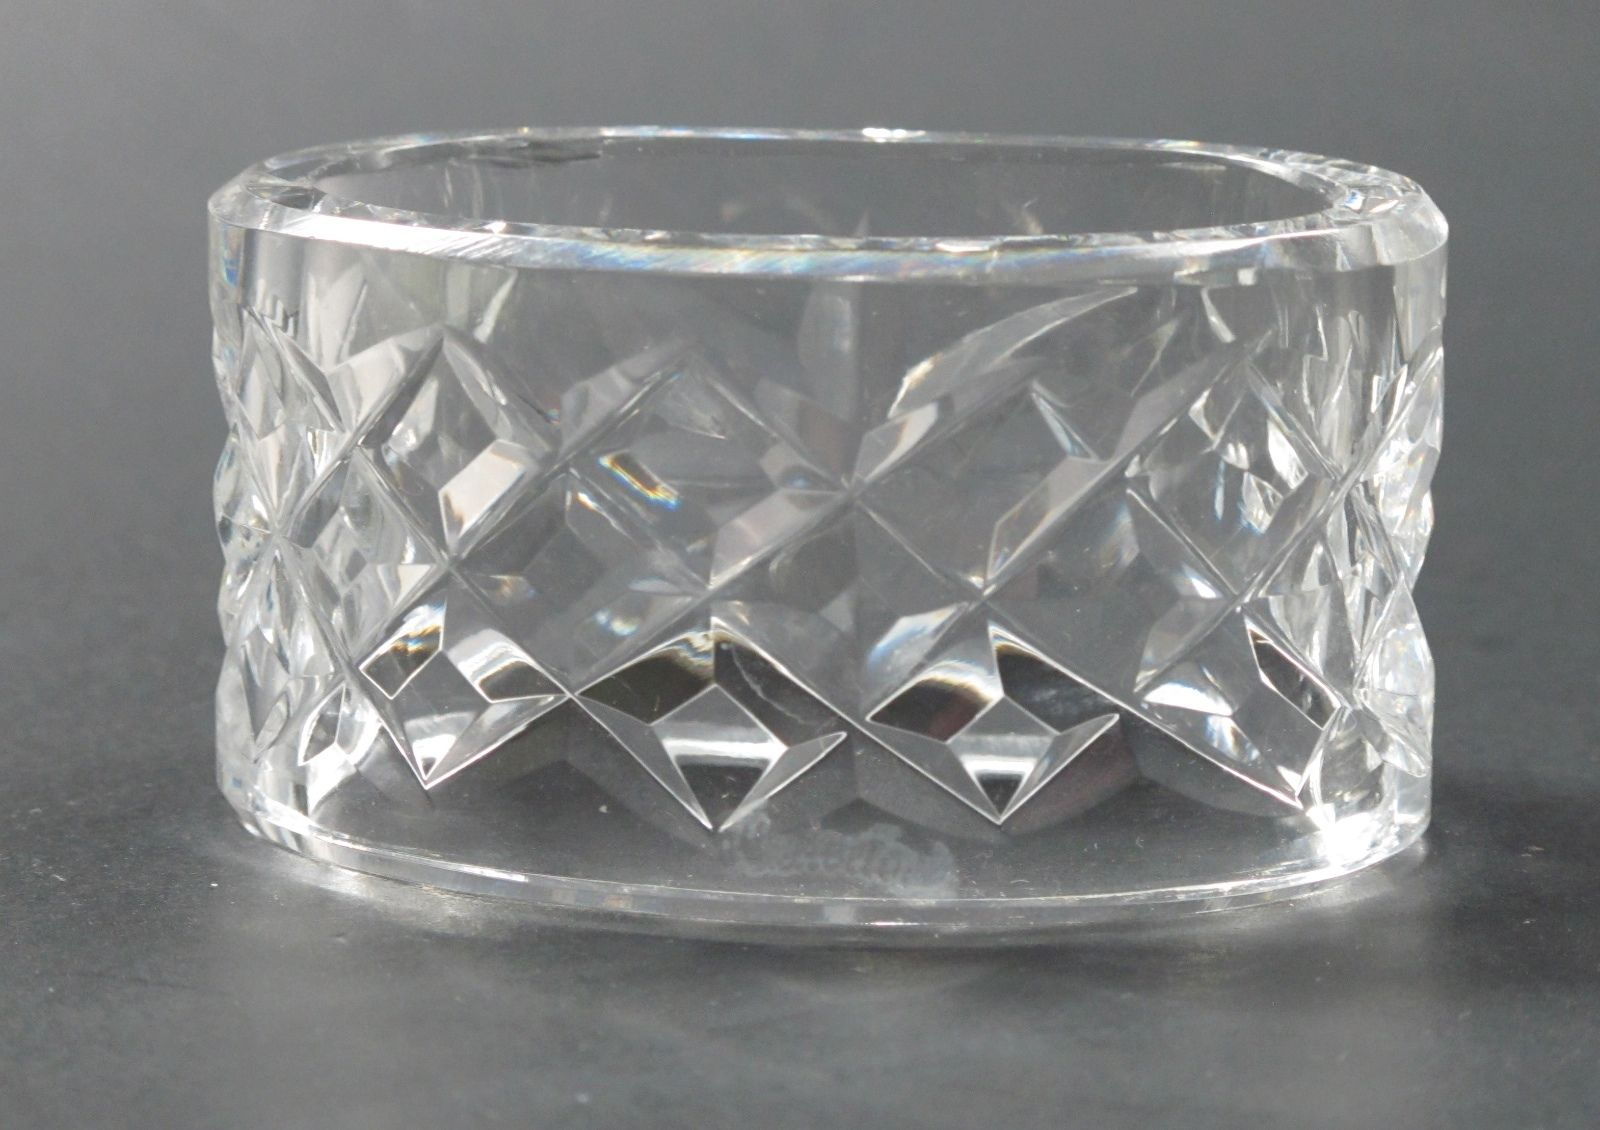 Sophisticated Waterford Ring Holder Inspiration | Chic Waterford Crystal Ring Dish